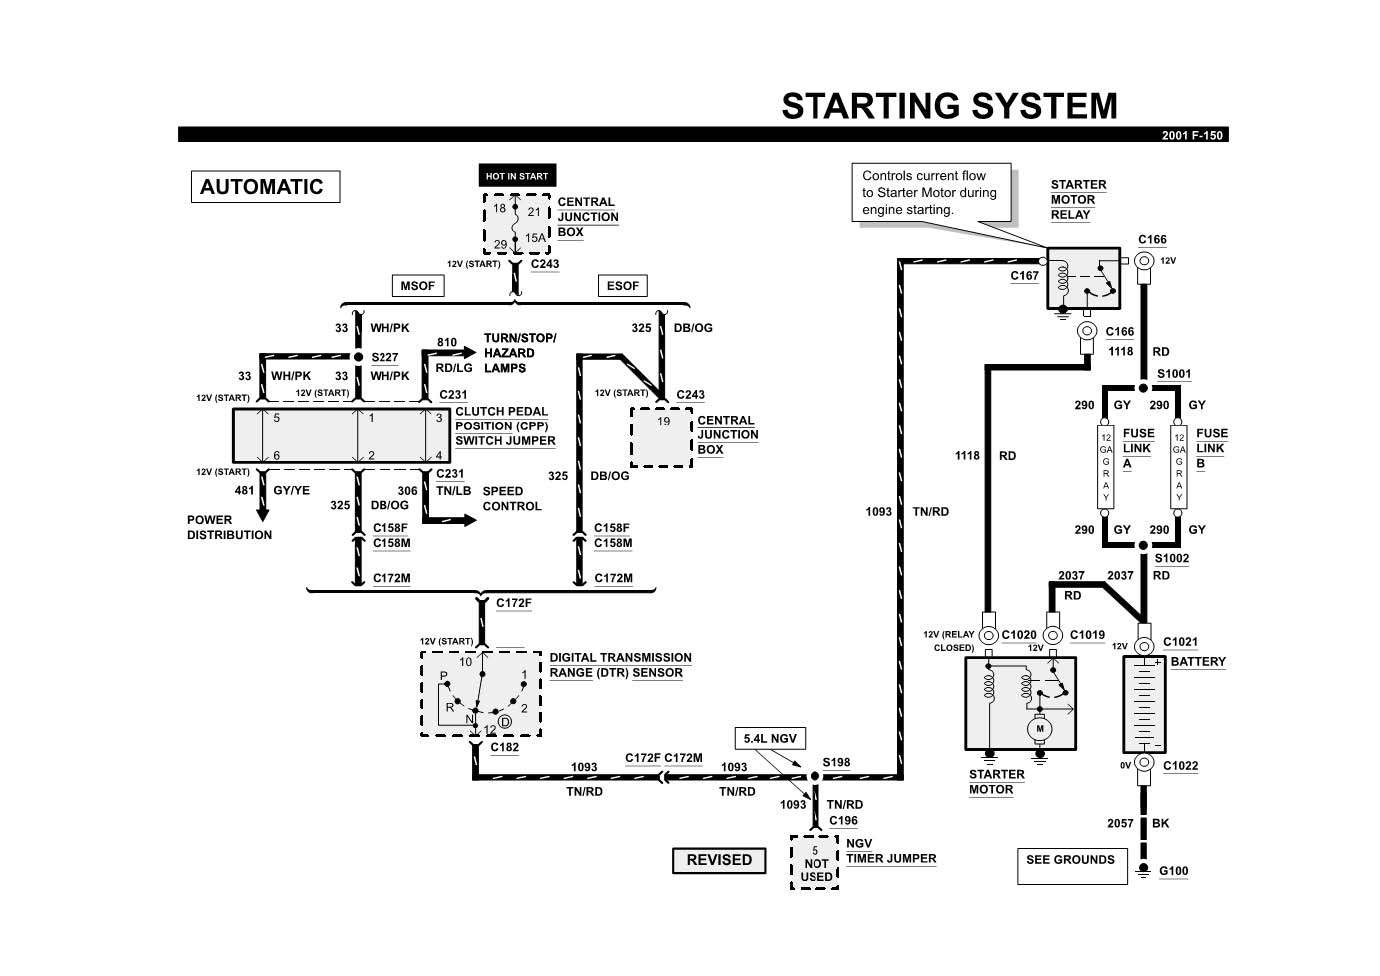 1999 ford mustang fuel pump wiring diagram 3 wire circuit anti theft 1998 qwe foneplanet de 2001 taurus fuse manual e books rh 2 made4dogs